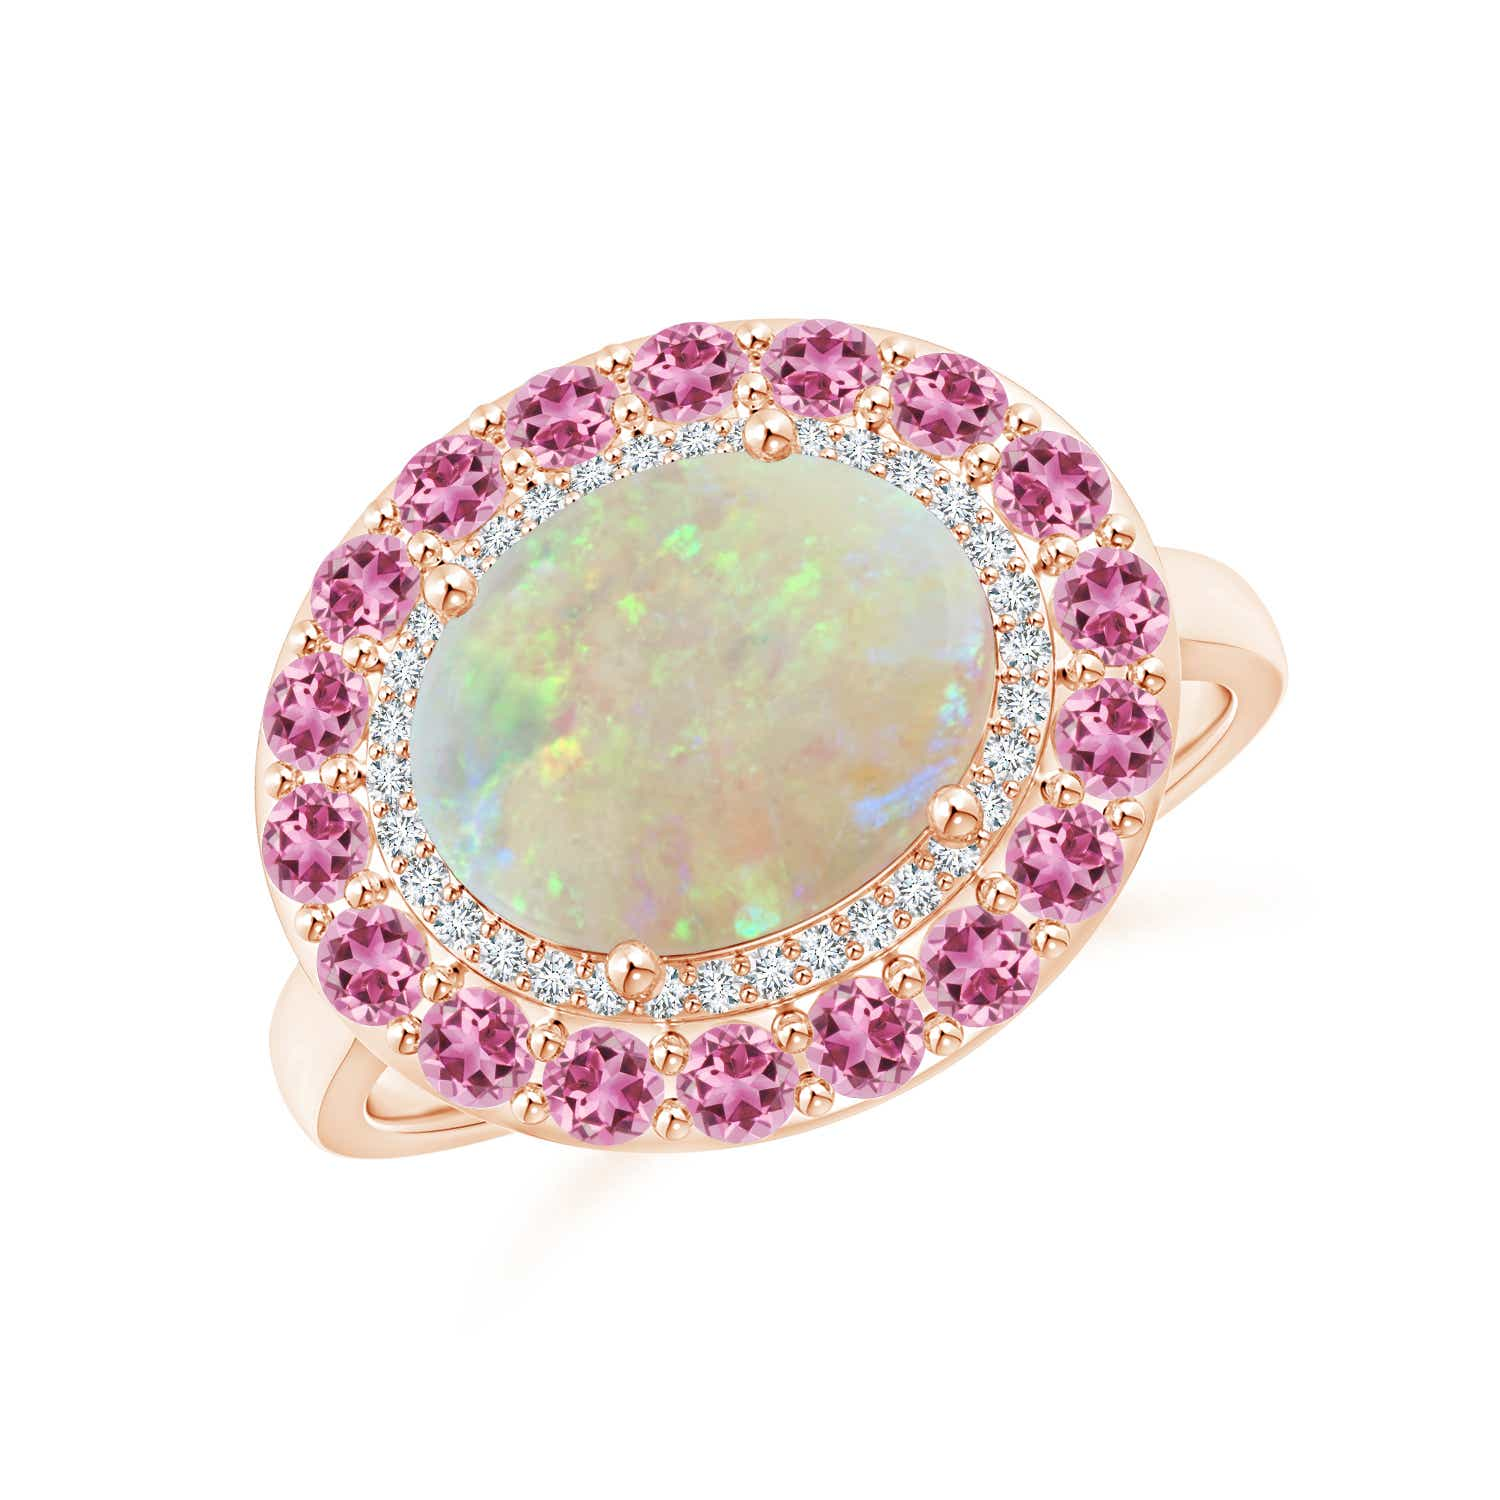 Sideways Oval Opal Double Halo Cocktail Ring - Angara.com